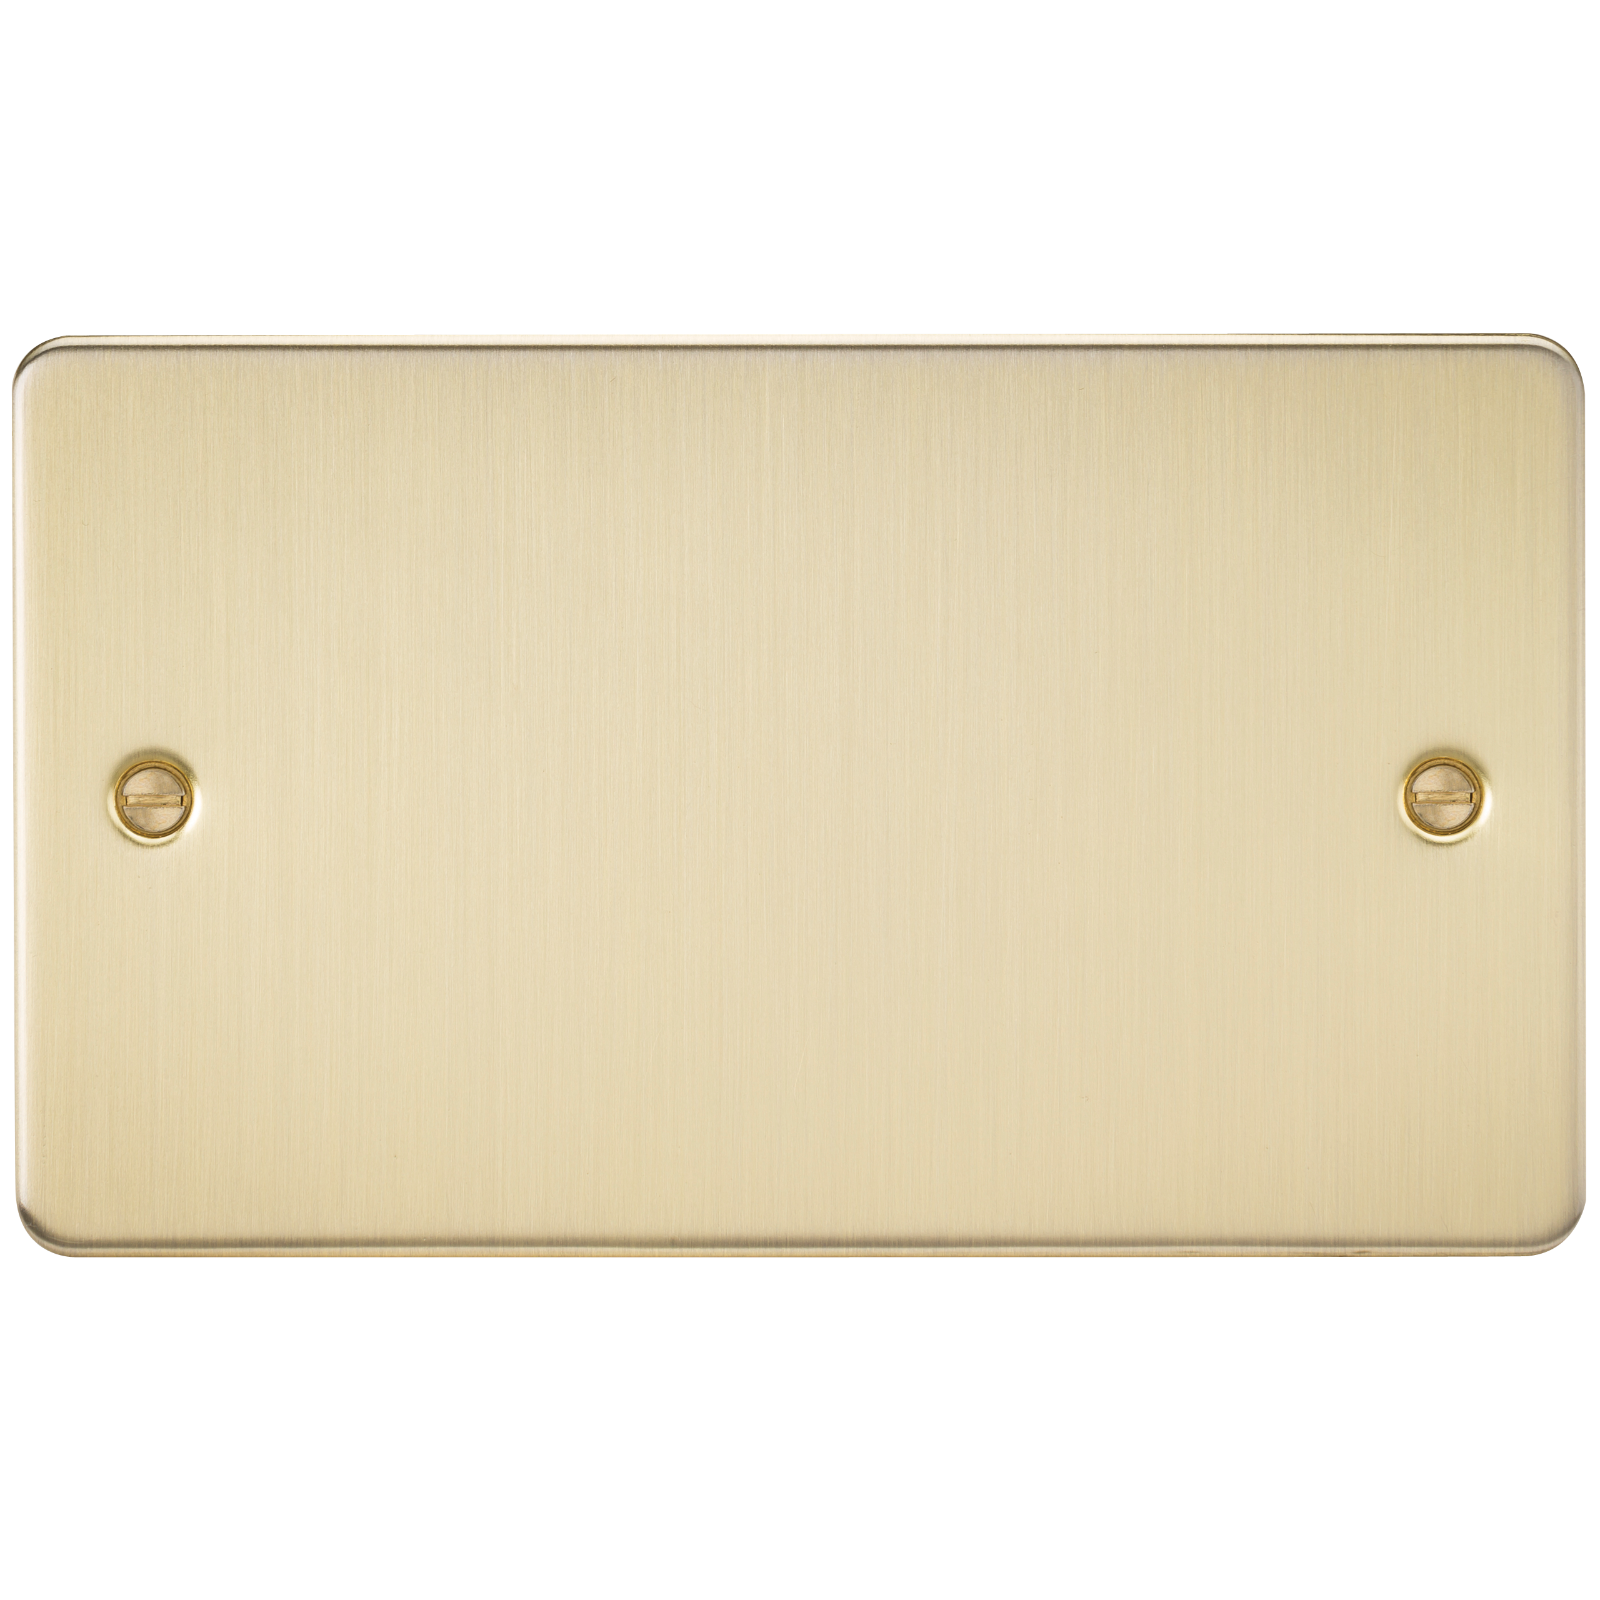 FLAT PLATE 2G BLANKING PLATE - BRUSHED BRASS